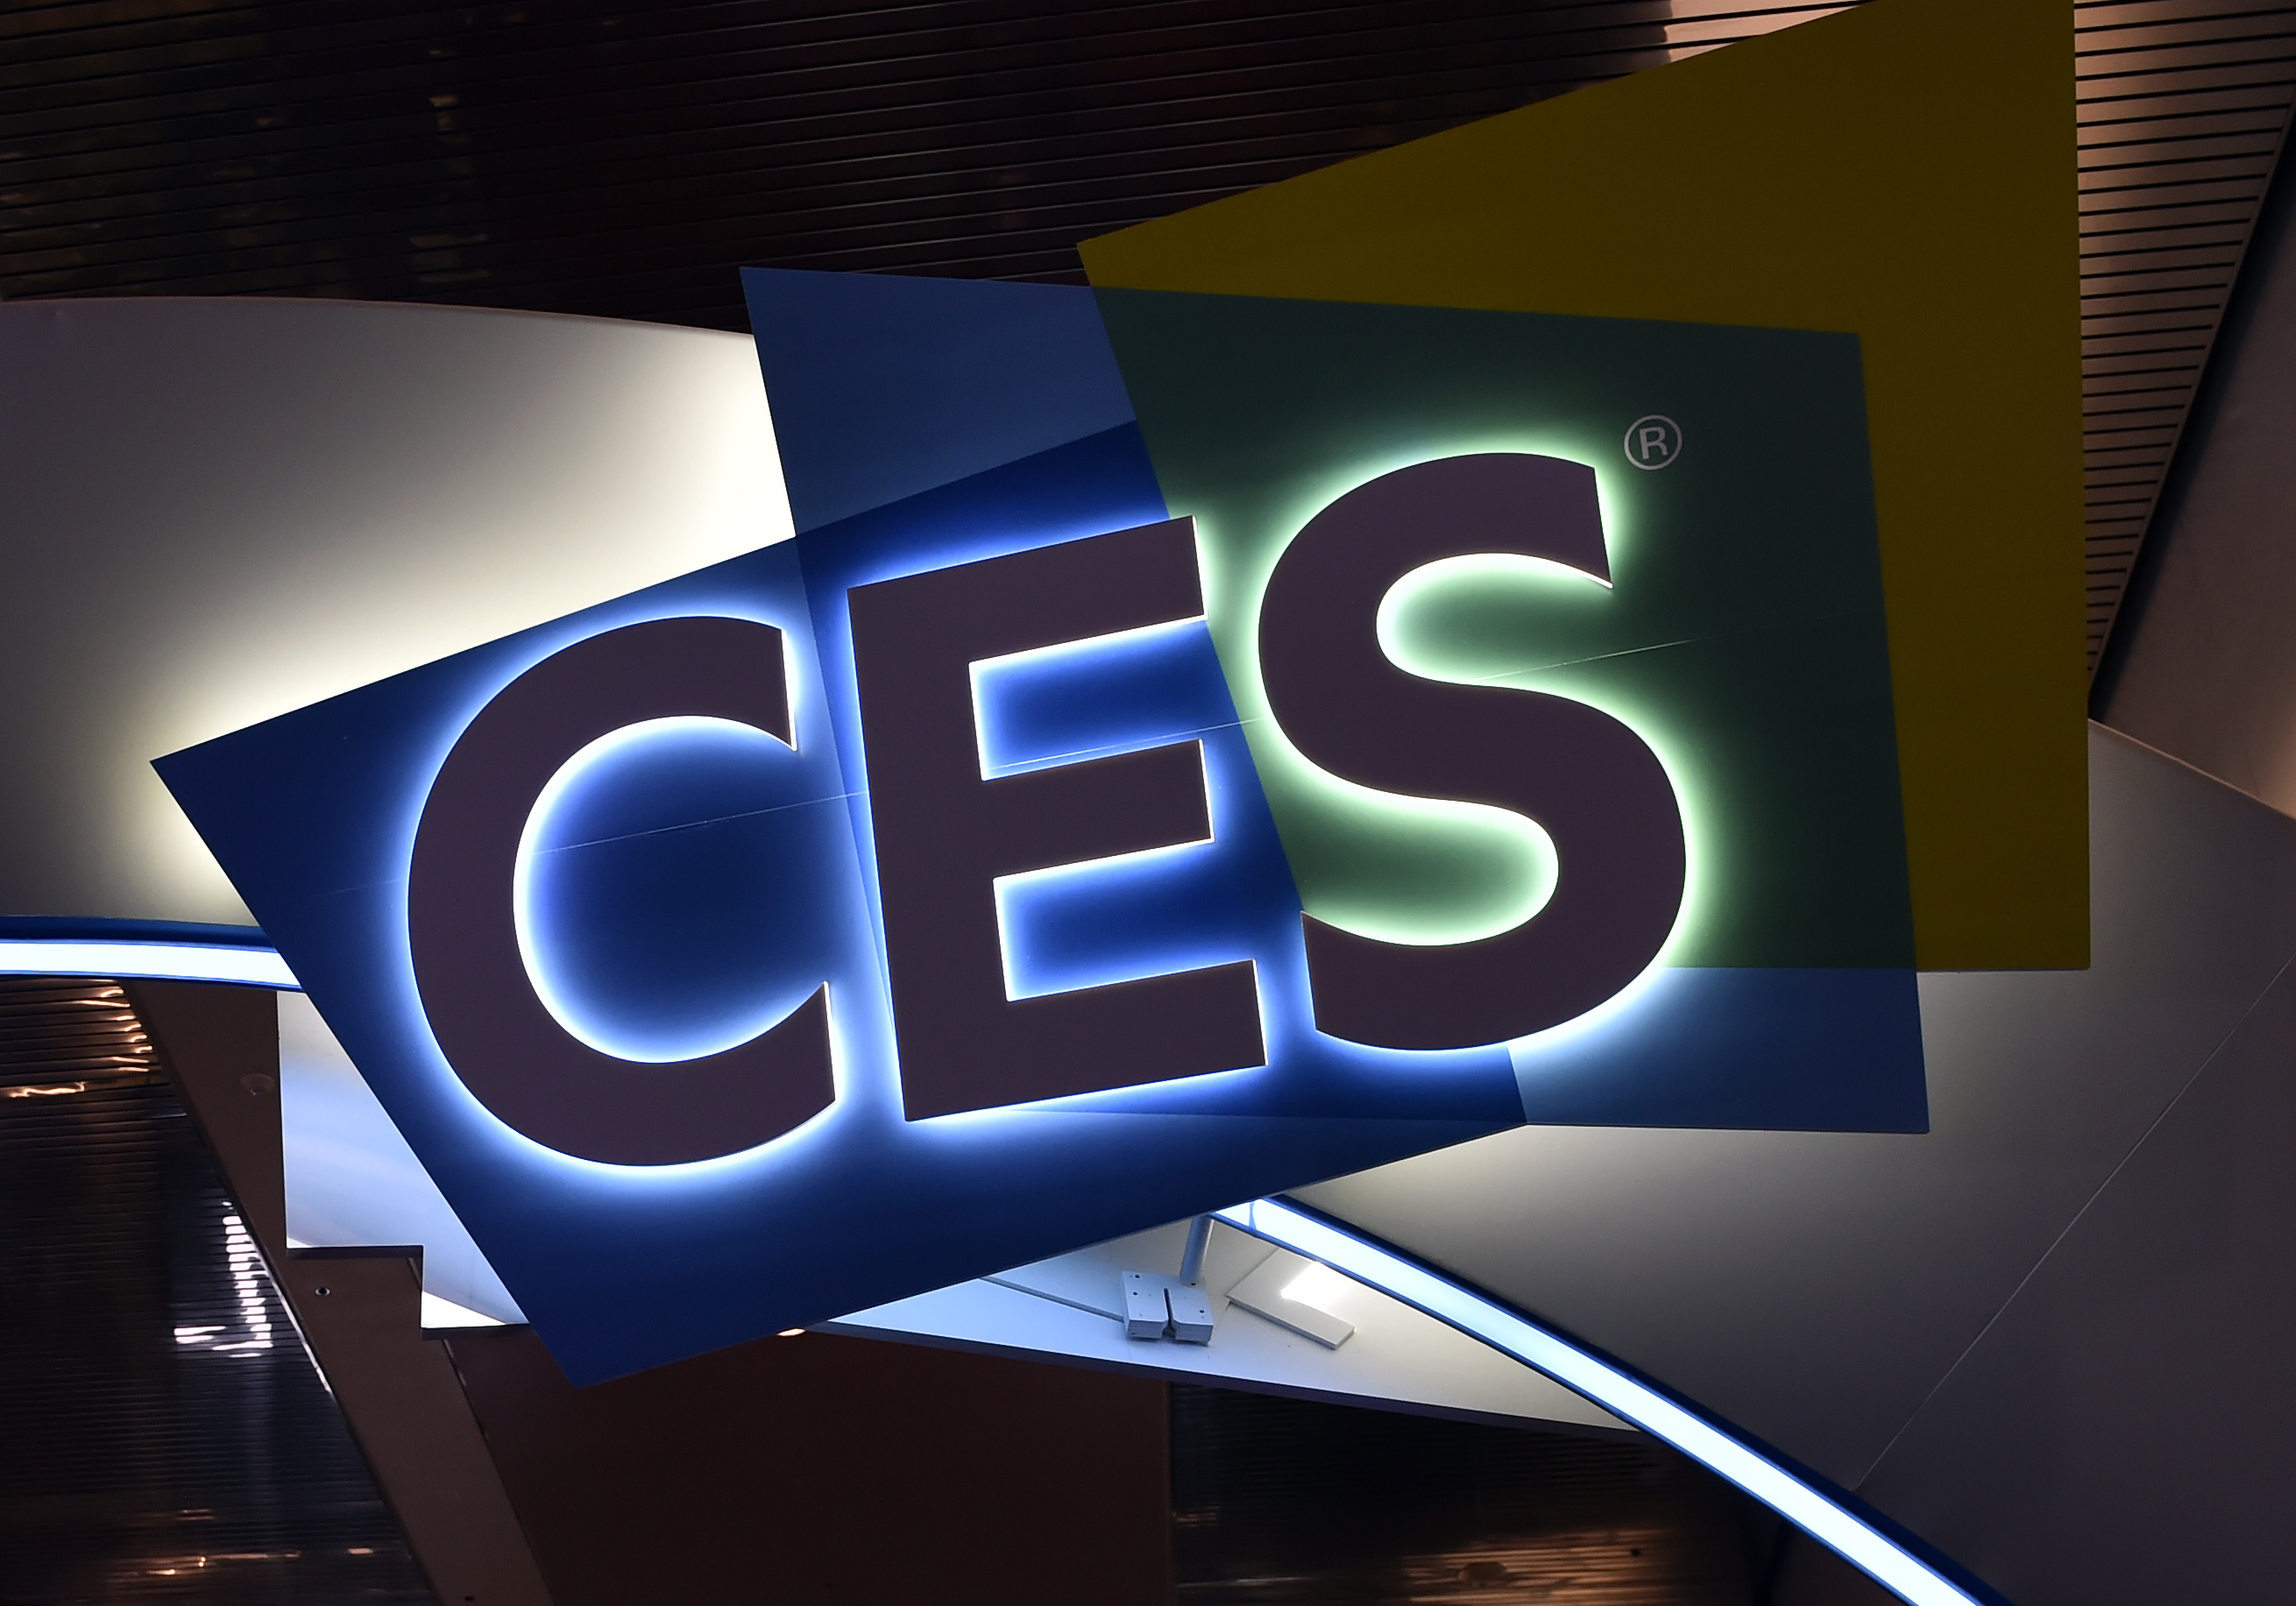 LAS VEGAS, NEVADA - JANUARY 08: A CES sign is illuminated at CES 2019 at the Las Vegas Convention Center on January 8, 2019 in Las Vegas, Nevada. CES, the world's largest annual consumer technology trade show, runs through January 11 and features about 4,500 exhibitors showing off their latest products and services to more than 180,000 attendees. (Photo by David Becker/Getty Images)